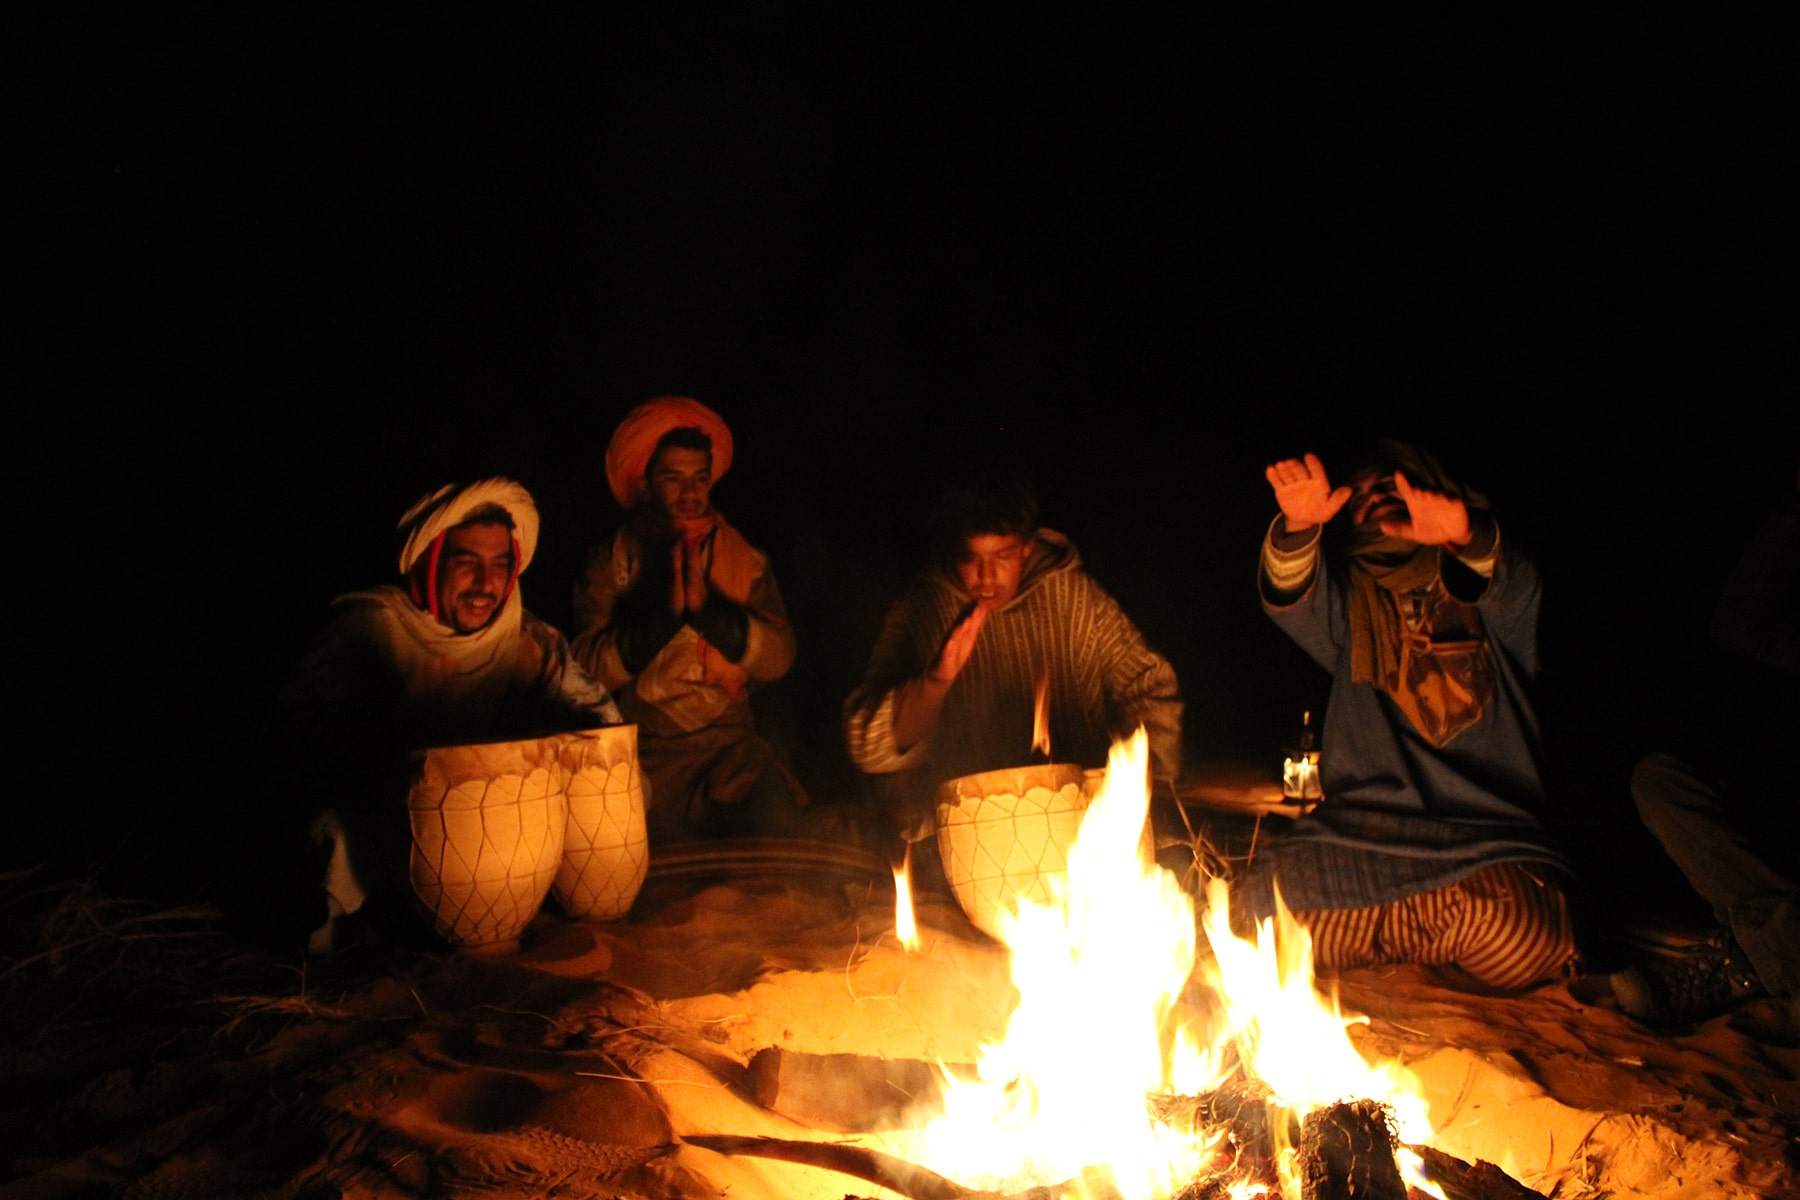 Berber singing and playing music around bonfire in Sahara desert